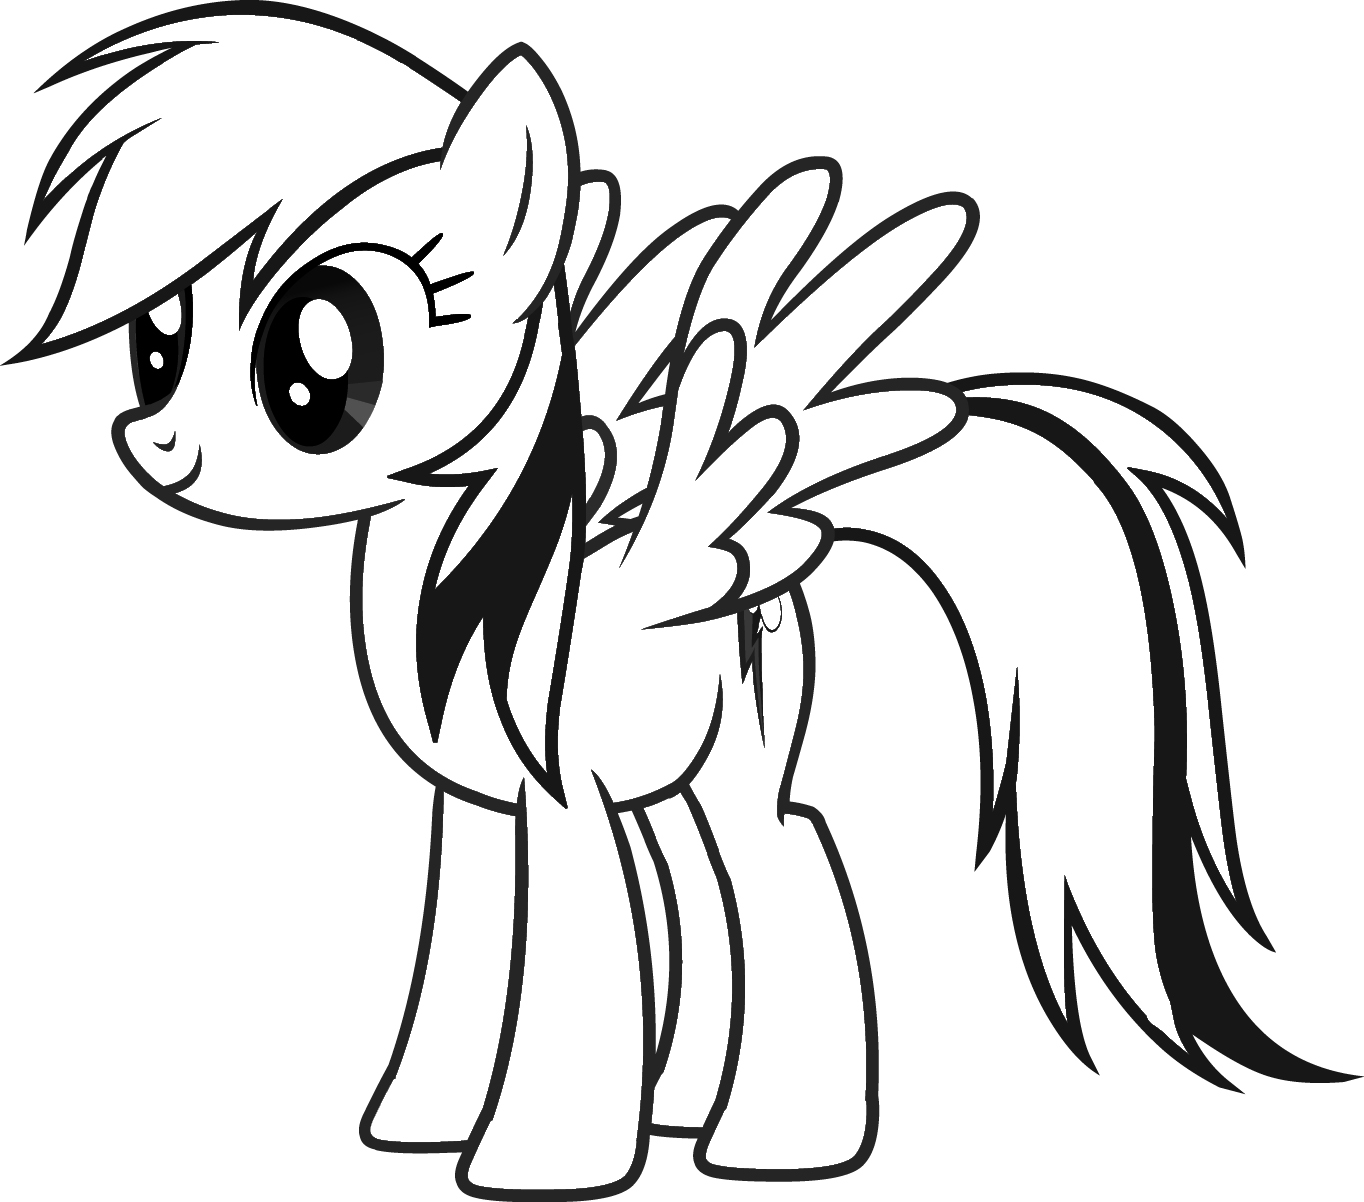 rainbow dash pictures to color print download colorful rainbow dash coloring pages to rainbow to color pictures dash